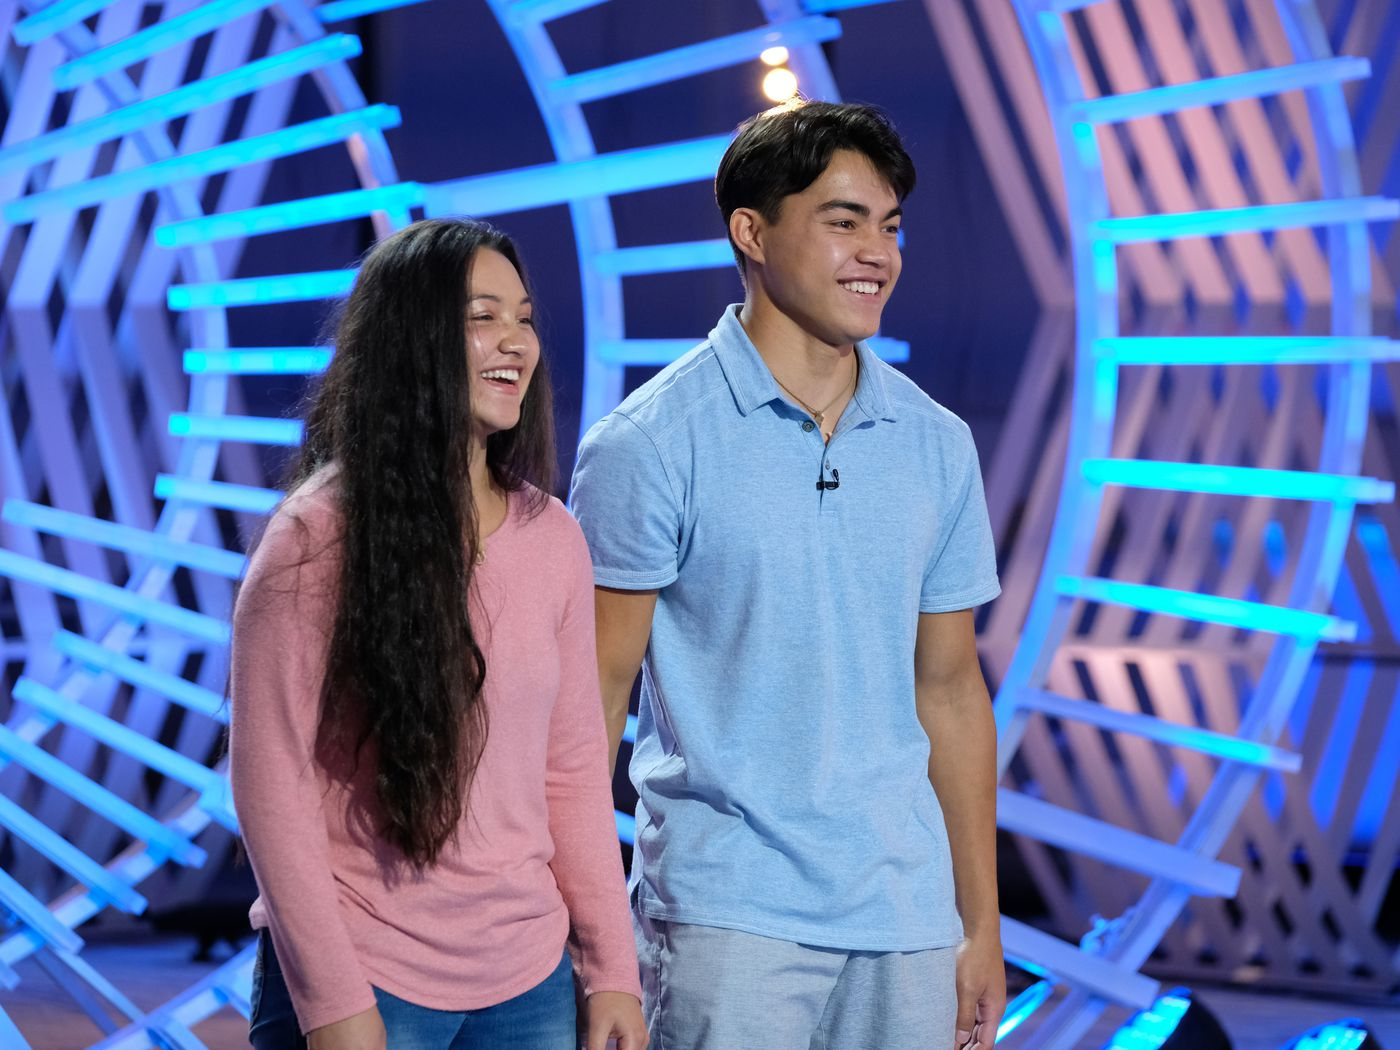 Latter-day Saint Sister and Brother, Ammon and Liahona Olayan, Compete on American Idol